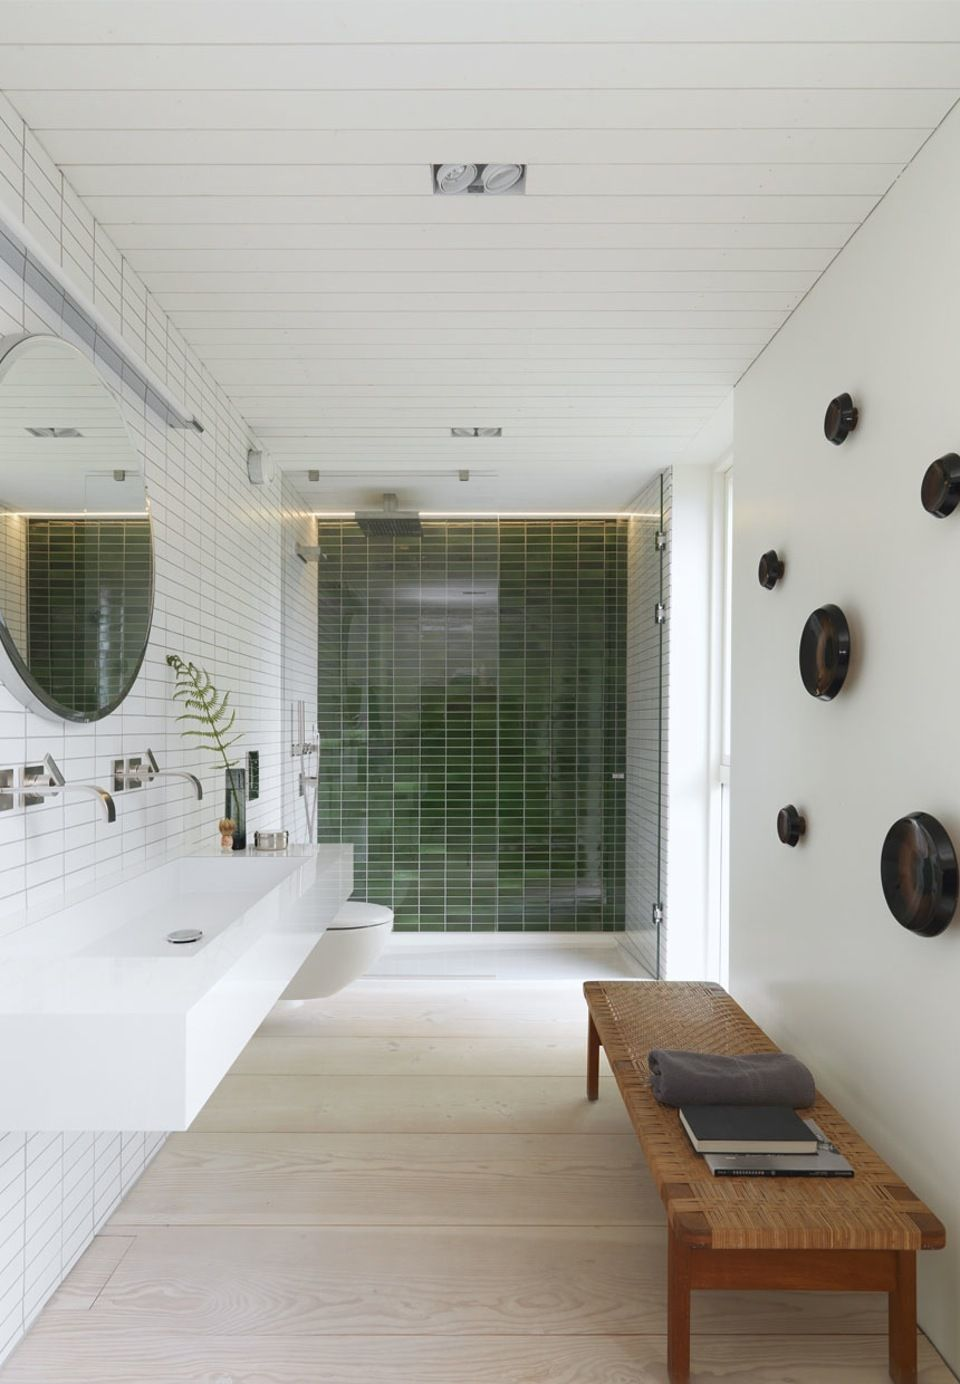 This modern bathroom is decorated with white and green wall tiles ...